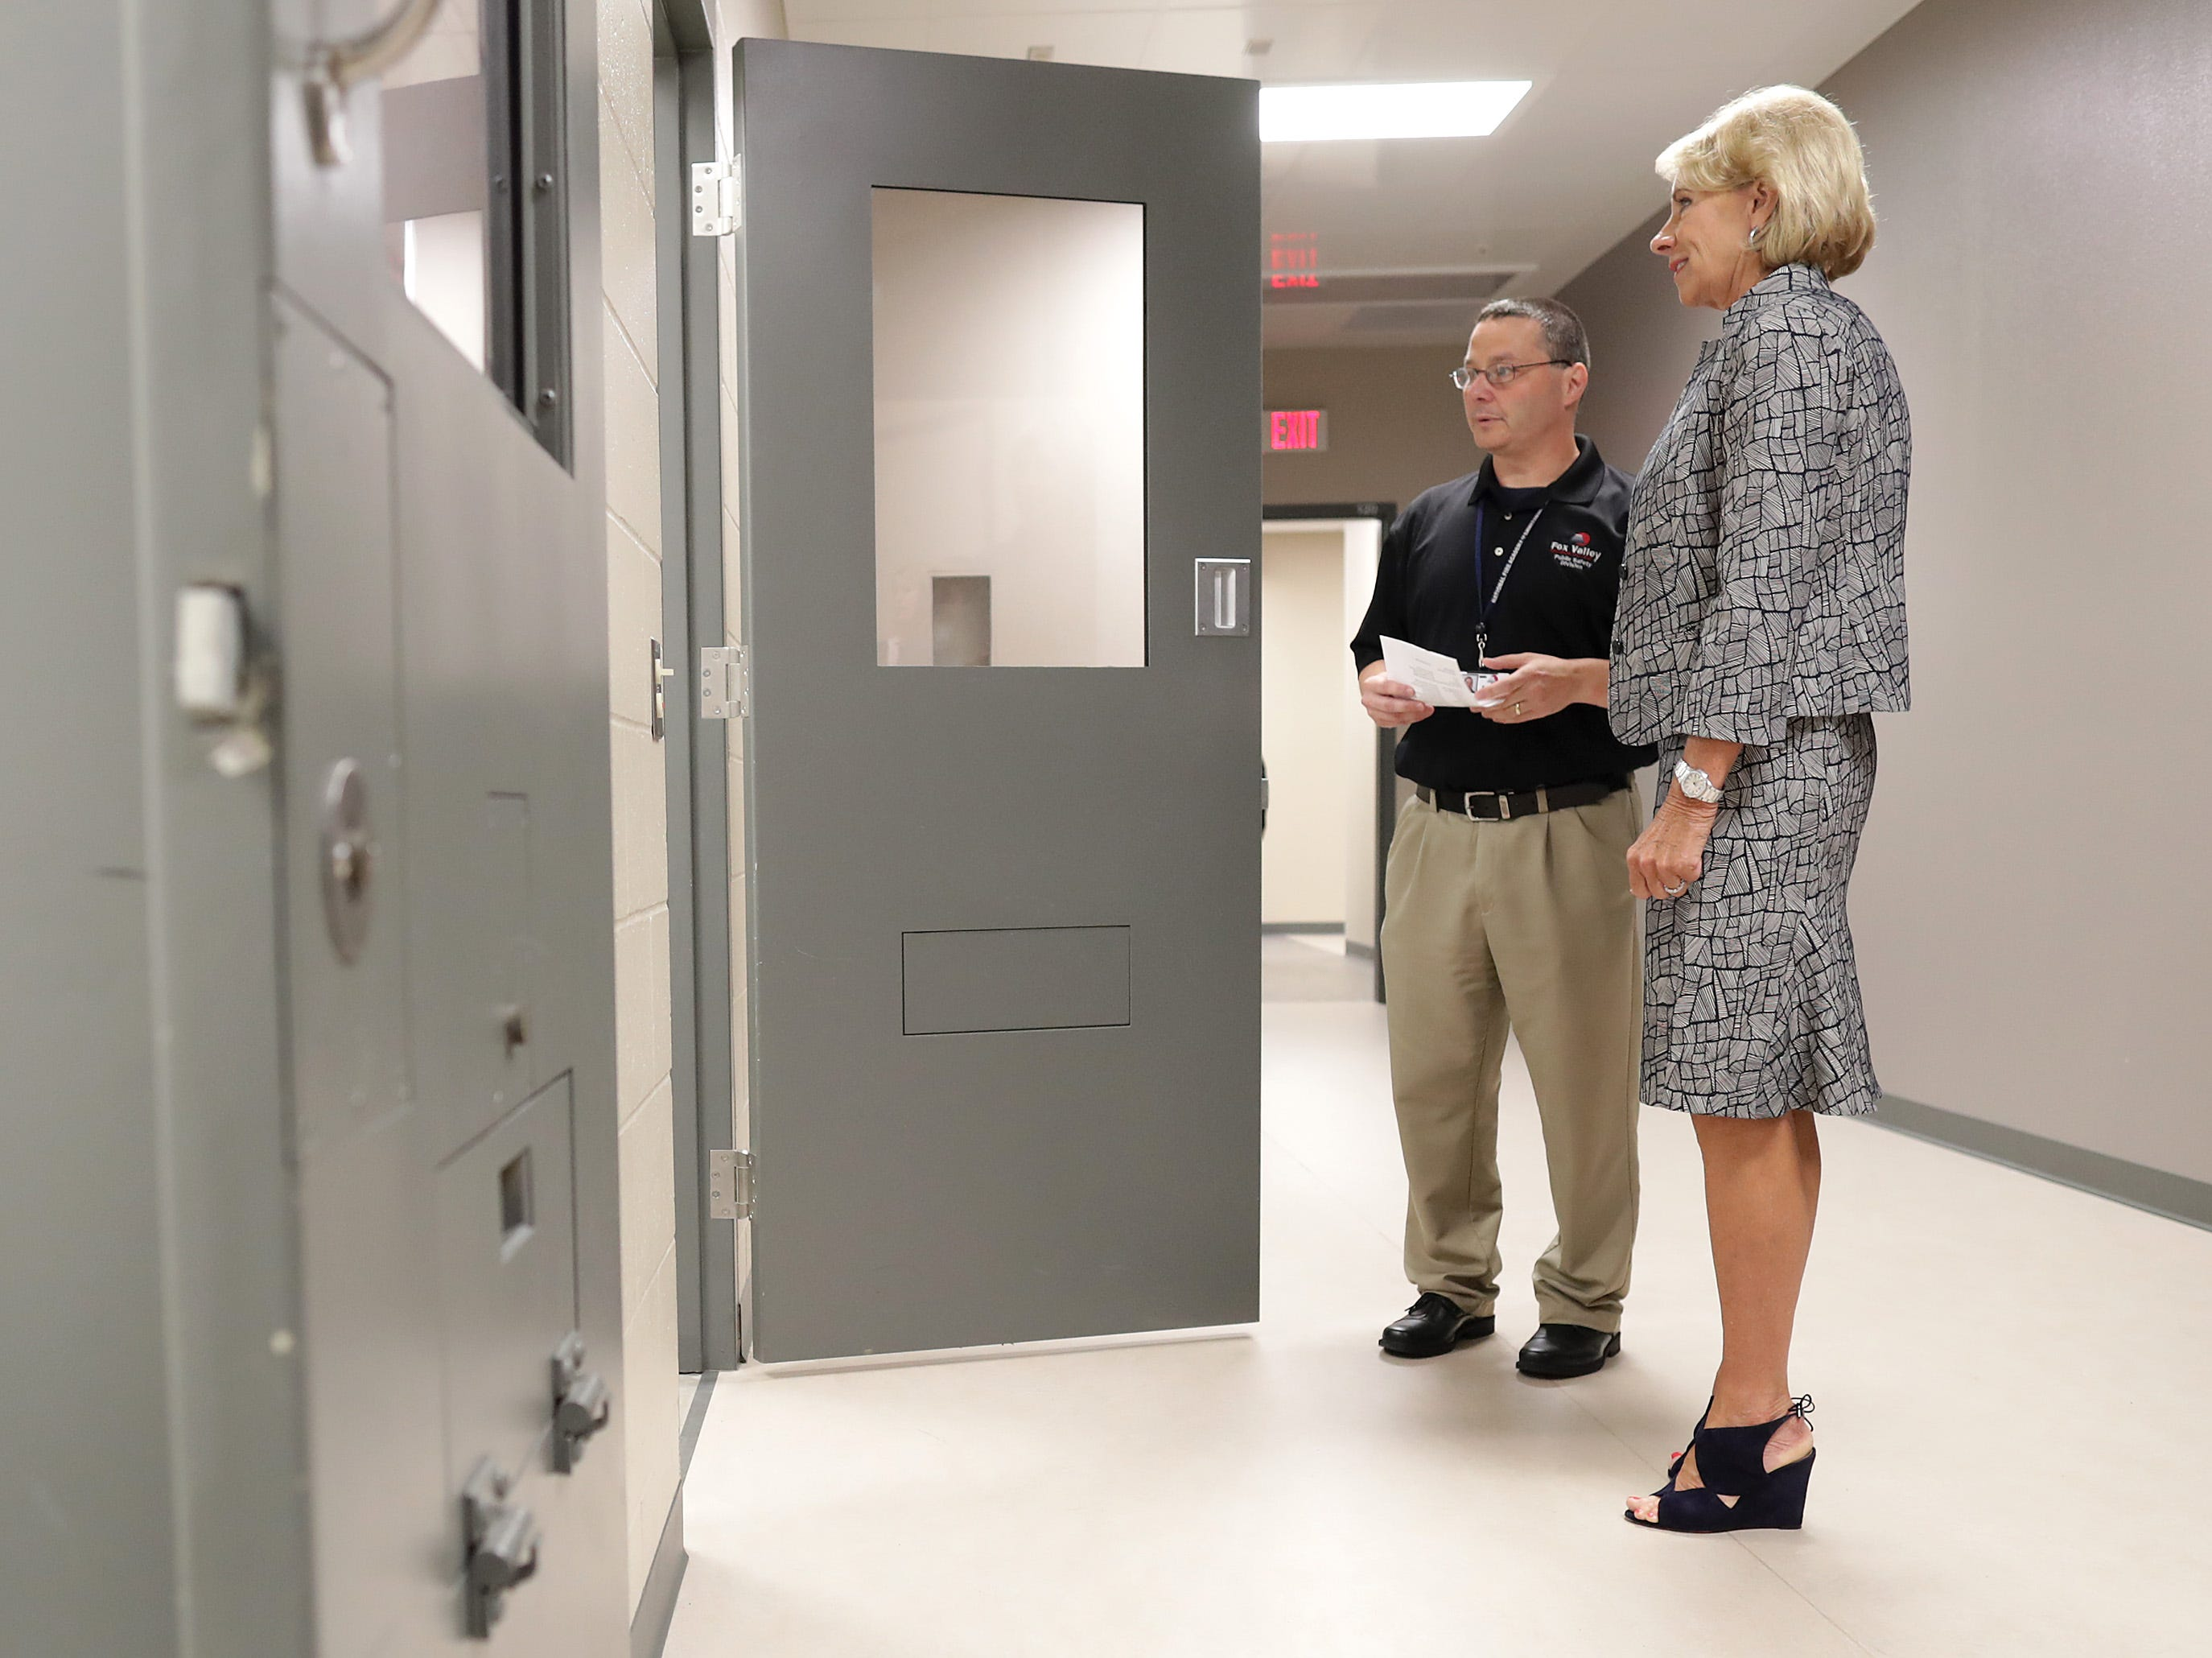 U.S. Secretary of Education Betsy DeVos takes a tour, led by Associate Dean Chris Fischer, to see firsthand how Fox Valley Technical CollegeÕs Public Safety Training Center is merging classroom lessons with reality-based hands-on training on Tuesday, July 24, 2018 in Greenville, Wis. Wm. Glasheen/USA TODAY NETWORK-Wisconsin